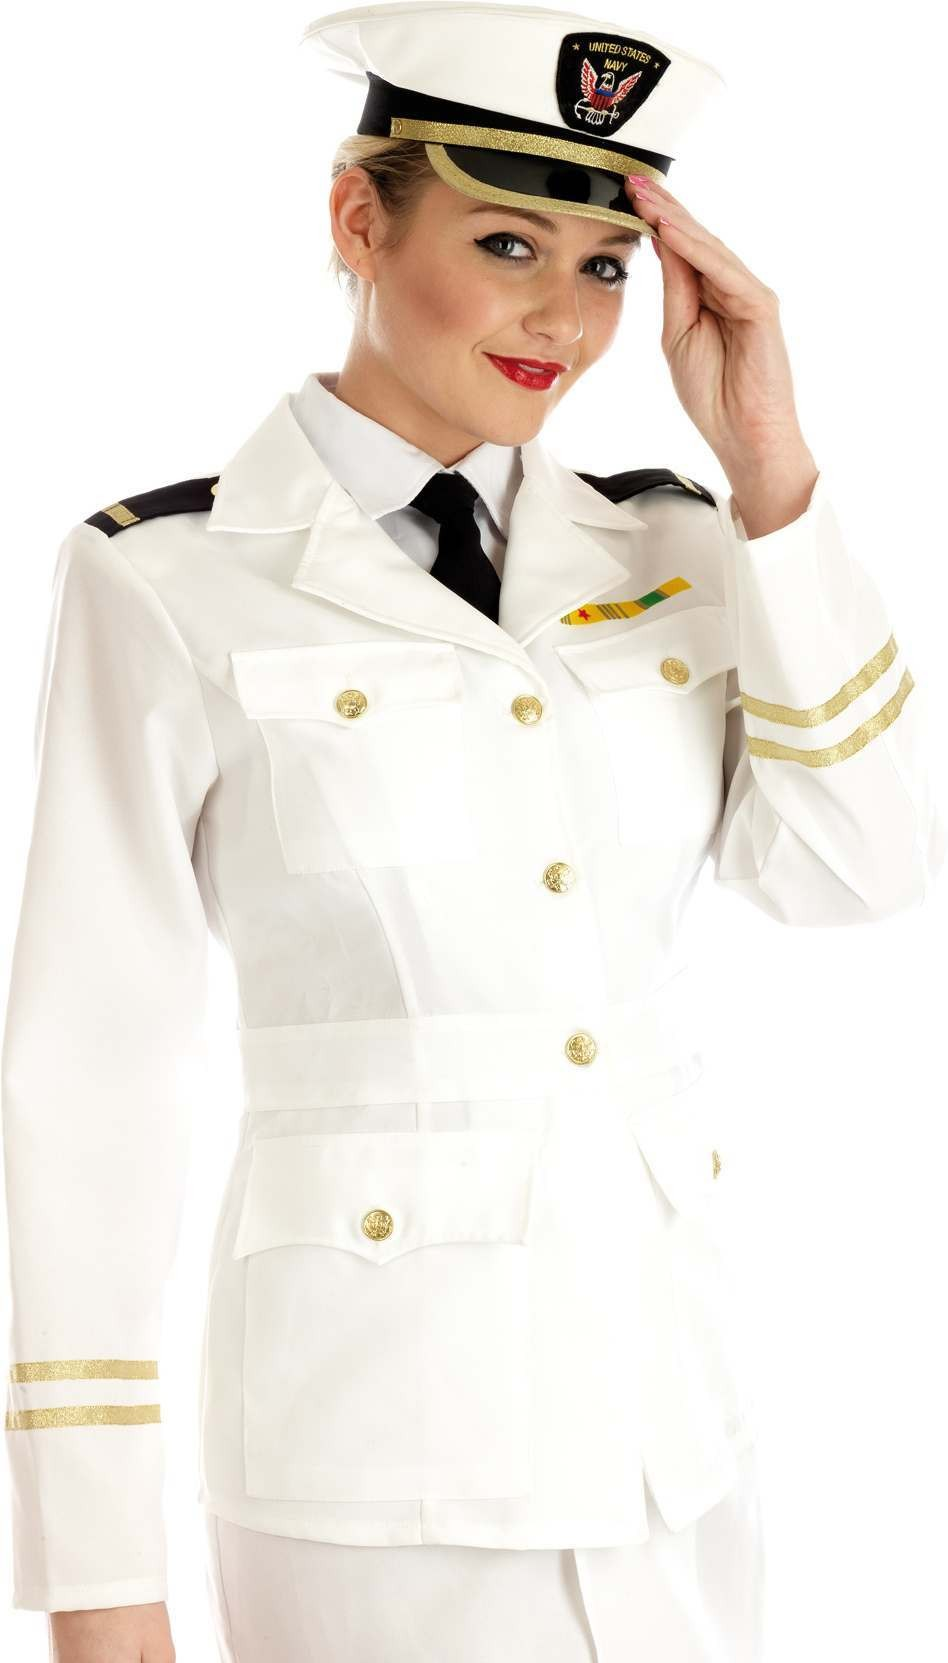 1940S Lady Naval Officer Fancy Dress Costume Ladies (Army)